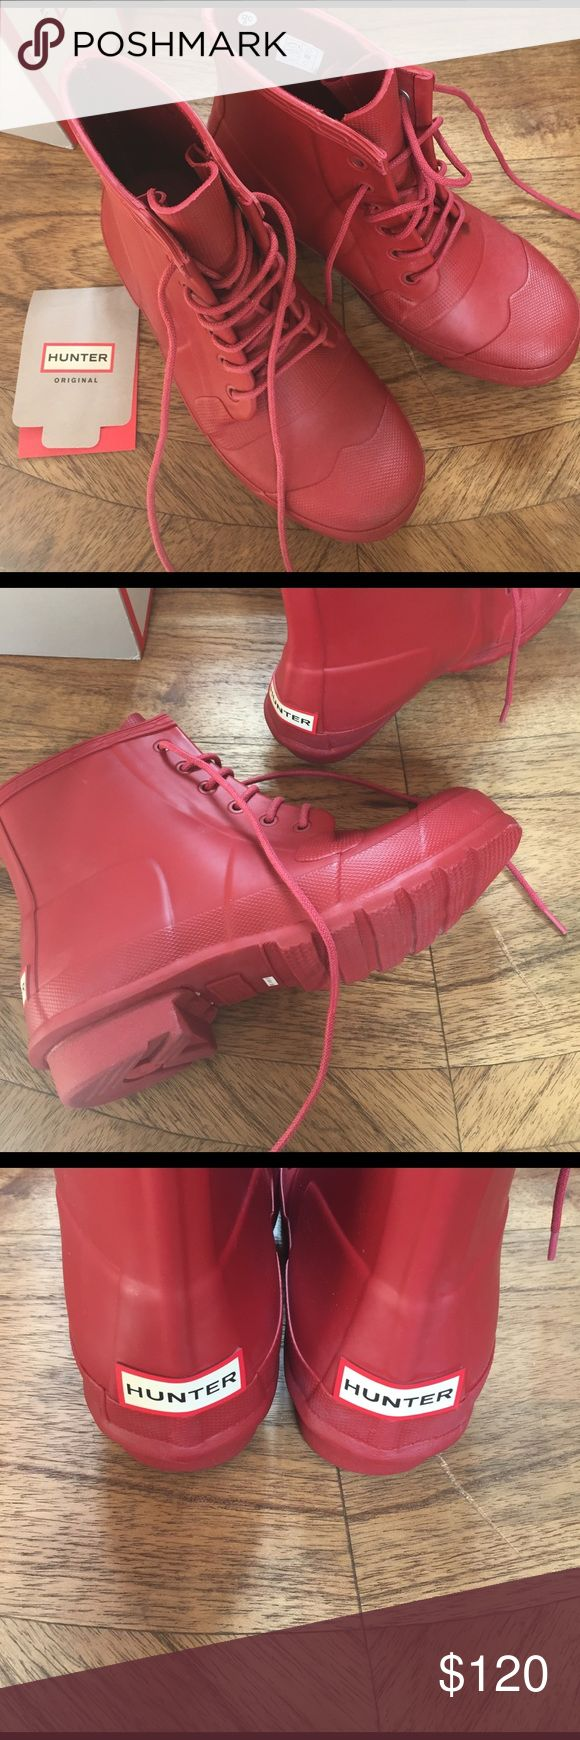 Hunter original lace up rain boot Brand new & never worn.  Super cute & versatile year round water proof original lace up rain boots by hunter in military red.  Pet free smoke free posher.  Purchased from Nordstrom, Boots in original box without lid. Hunter Shoes Winter & Rain Boots